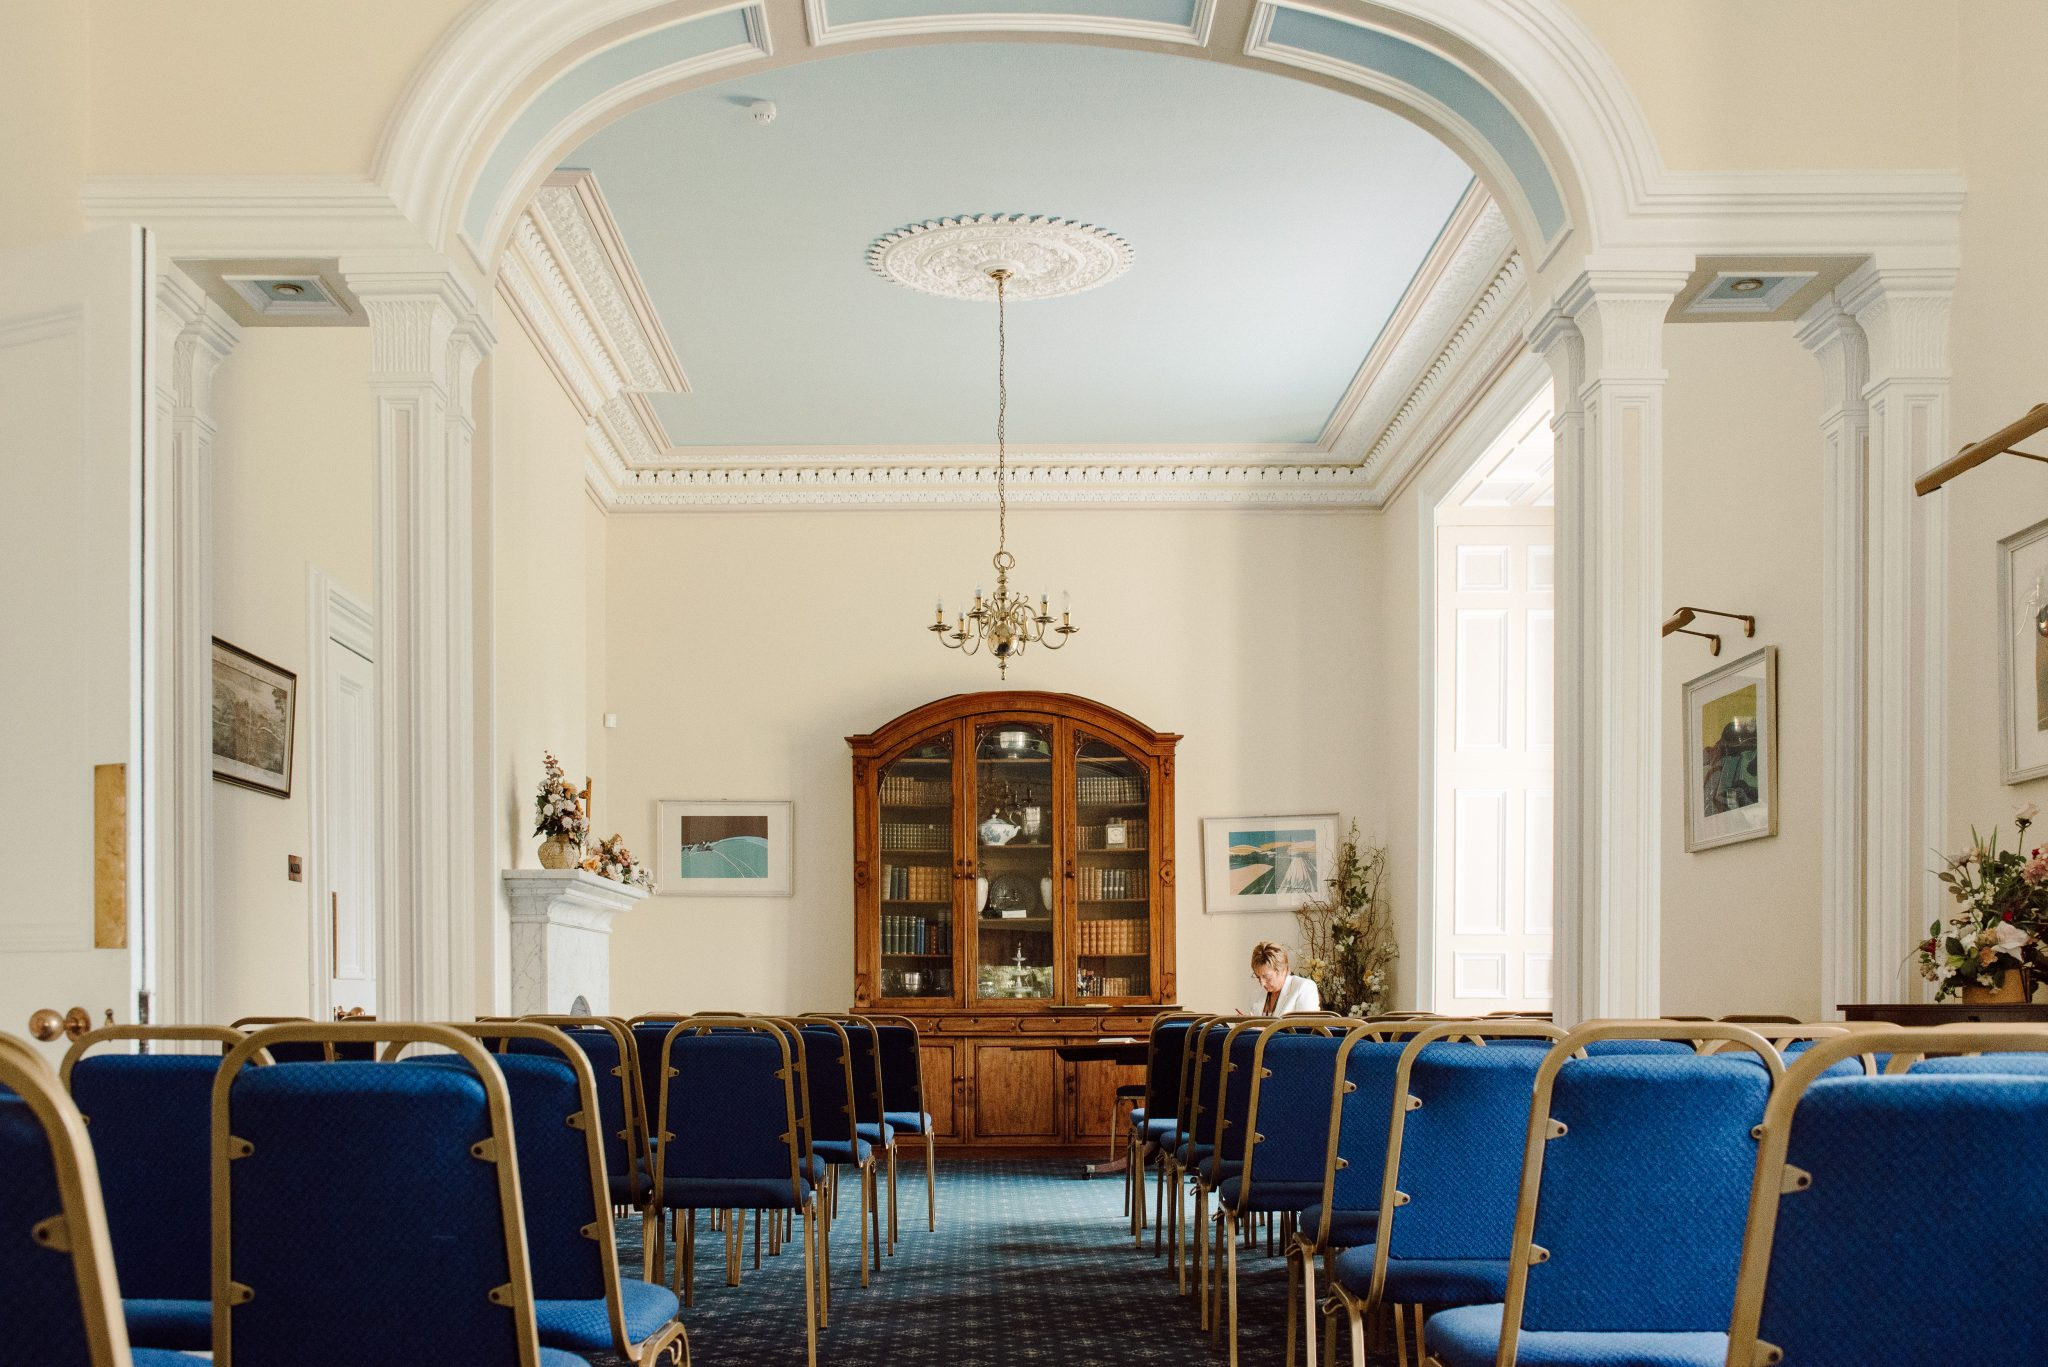 Ceremony Room at Larkbeare House in Exeter